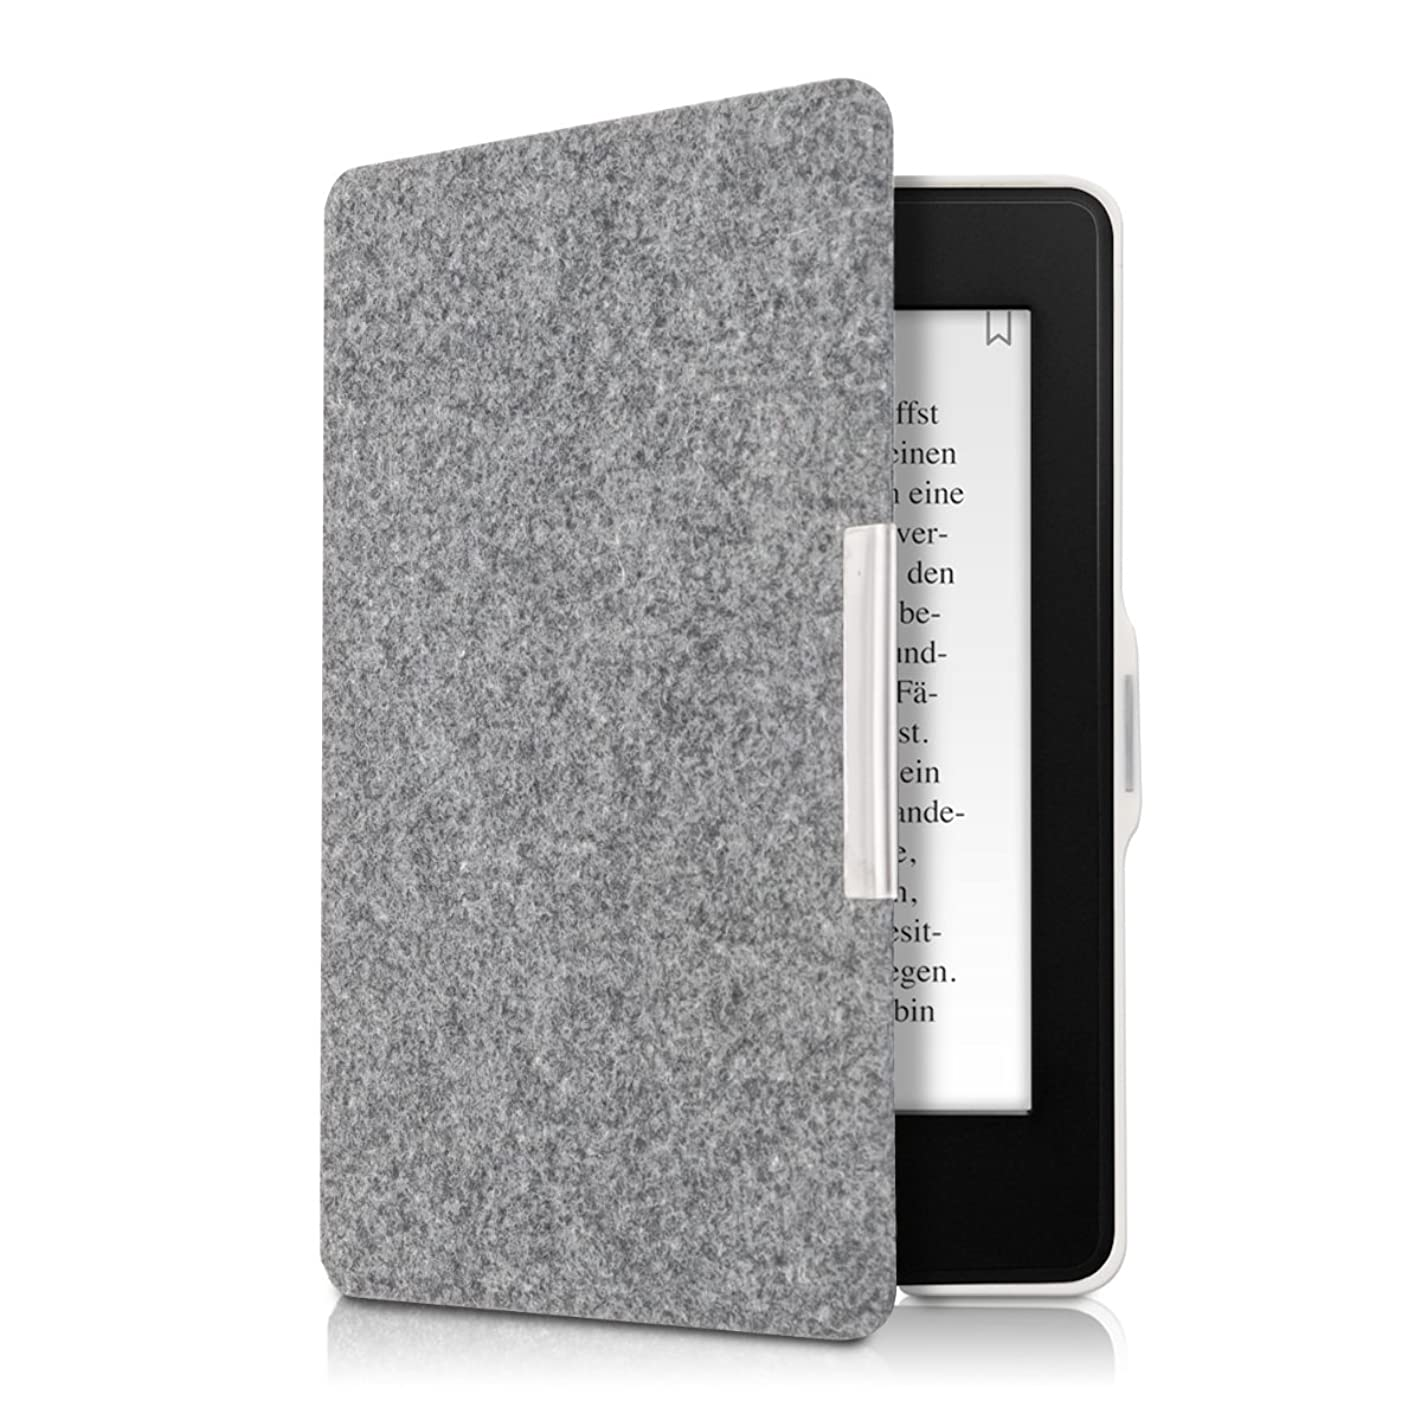 kwmobile Case for Amazon Kindle Paperwhite - Book Style Felt Fabric Protective e-Reader Cover Folio Case - (for 2017 and Older) Light Grey